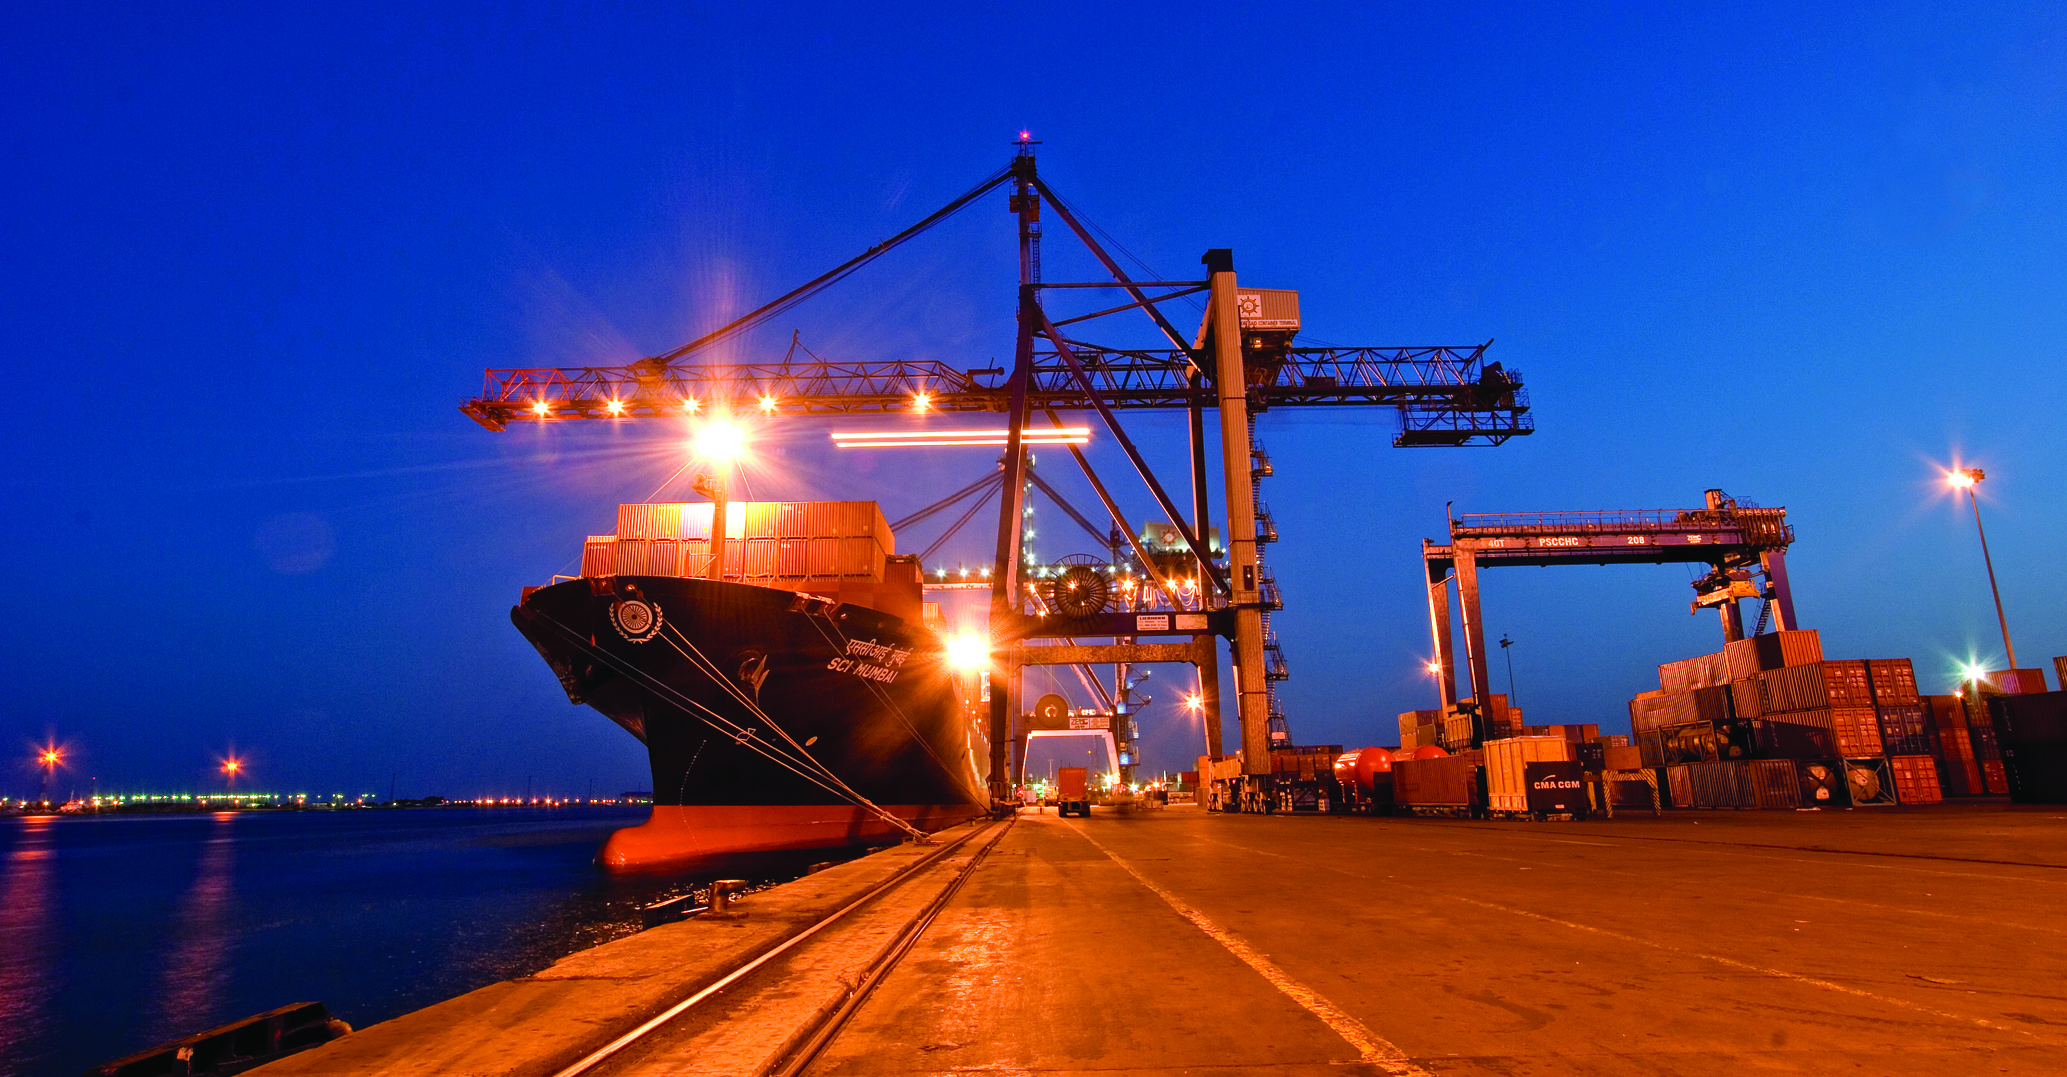 A Container Port Solutions Company from APAC - Positioning its brand in the Latin America region